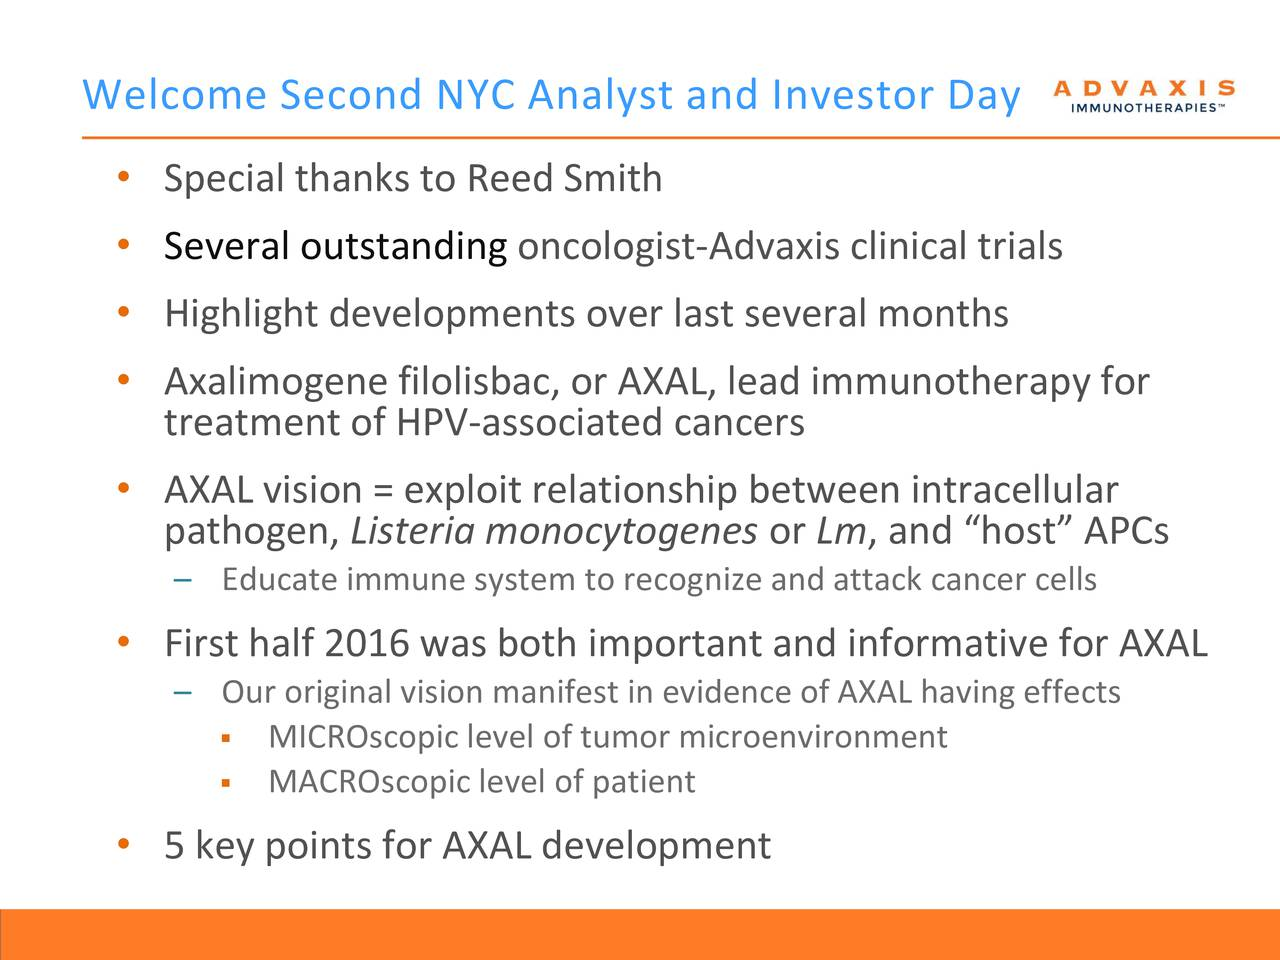 Special thanks to Reed Smith Several outstanding oncologist-Advaxis clinical trials Highlight developments over last several months Axalimogene filolisbac, or AXAL, lead immunotherapy for treatment of HPV-associated cancers AXAL vision = exploit relationship between intracellular pathogen, Listeria monocytogenes or Lm, and host APCs Educate immune system to recognize and attack cancer cells First half 2016 was both important and informative for AXAL Our original vision manifest in evidence of AXAL having effects MICROscopic level of tumor microenvironment MACROscopic level of patient 5 key points for AXAL development